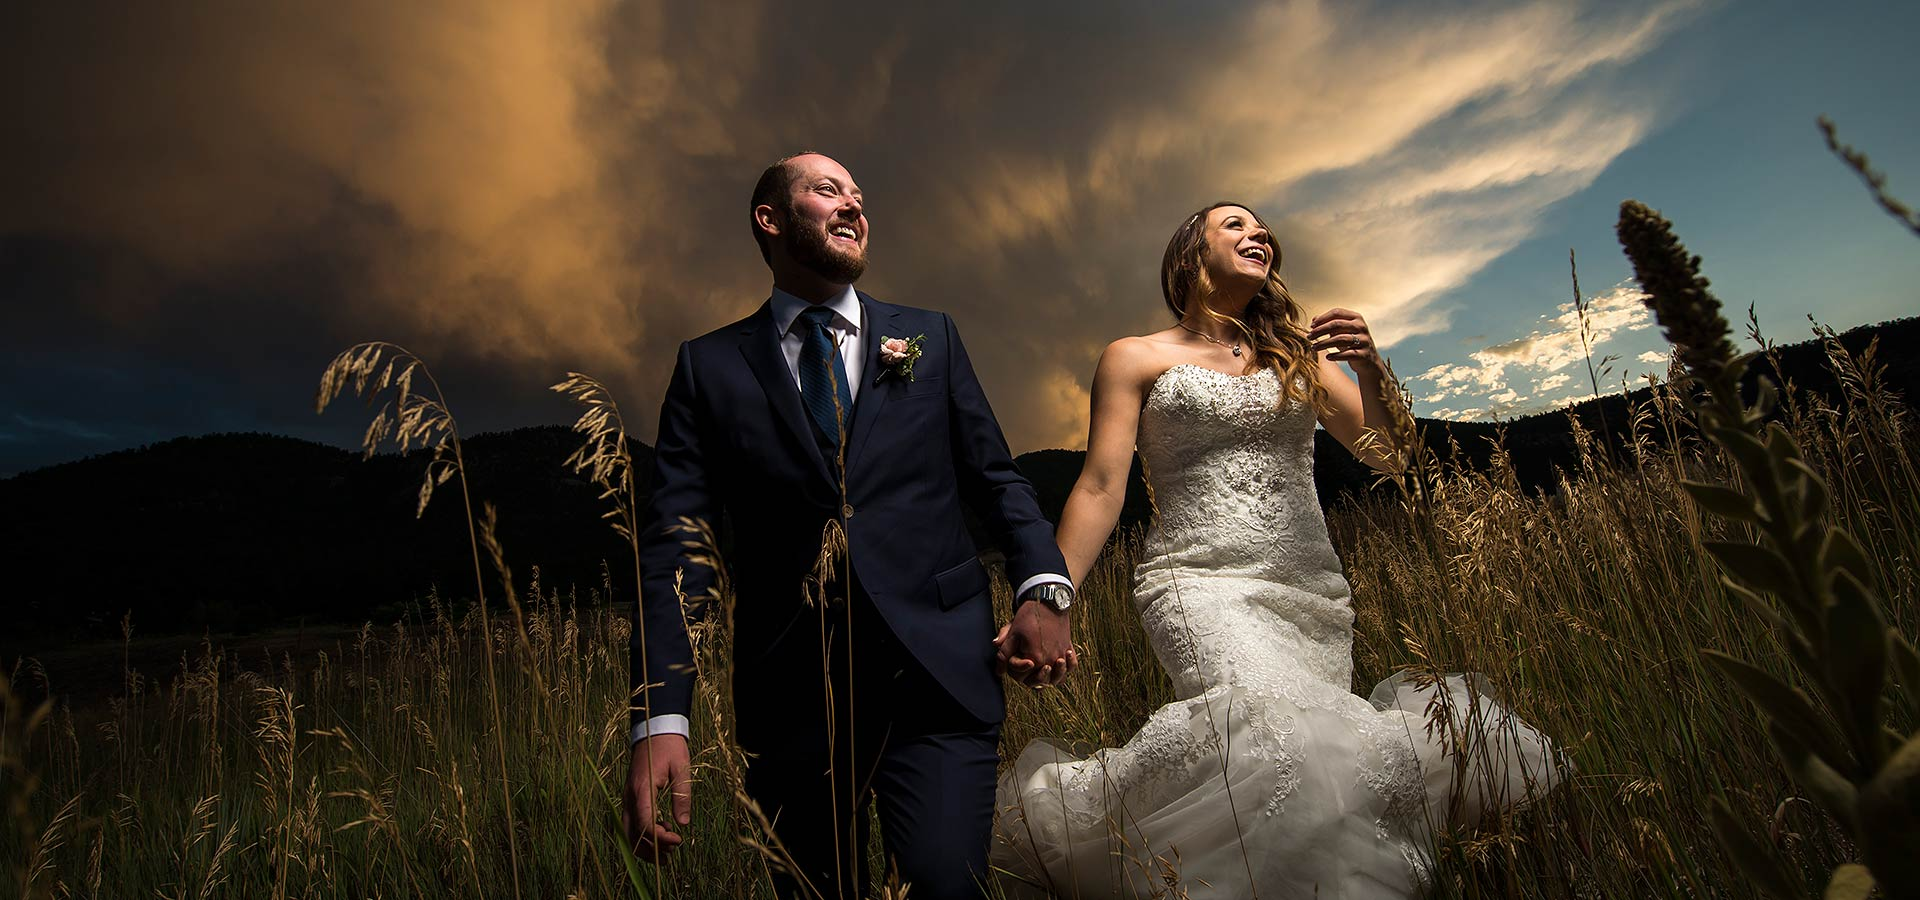 Mon Cheri wedding | Estes Park wedding photographer | J La Plante Photo